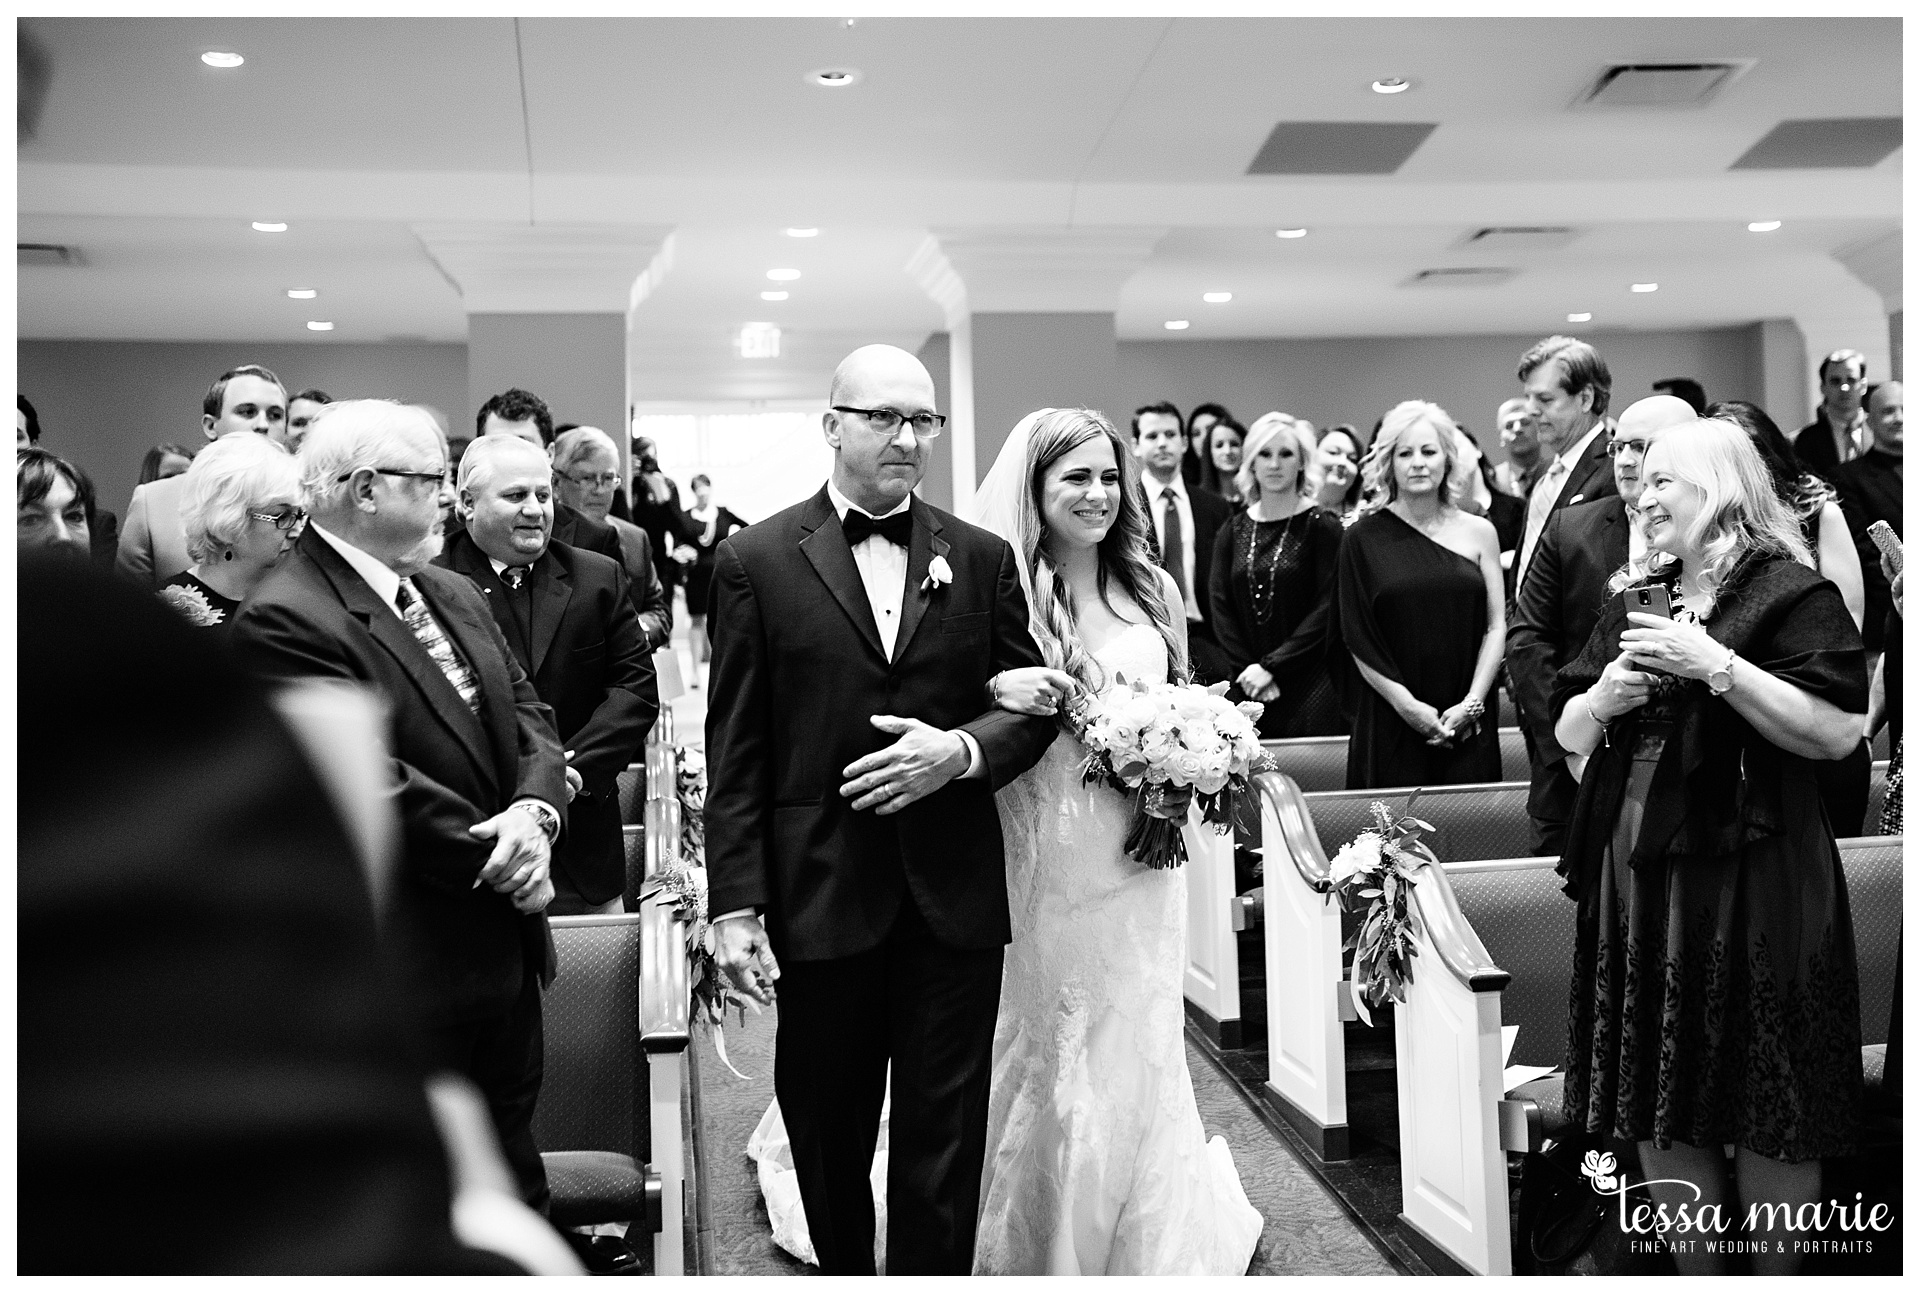 tessa_marie_weddings_legacy_story_focused_wedding_pictures_atlanta_wedding_photographer_0109